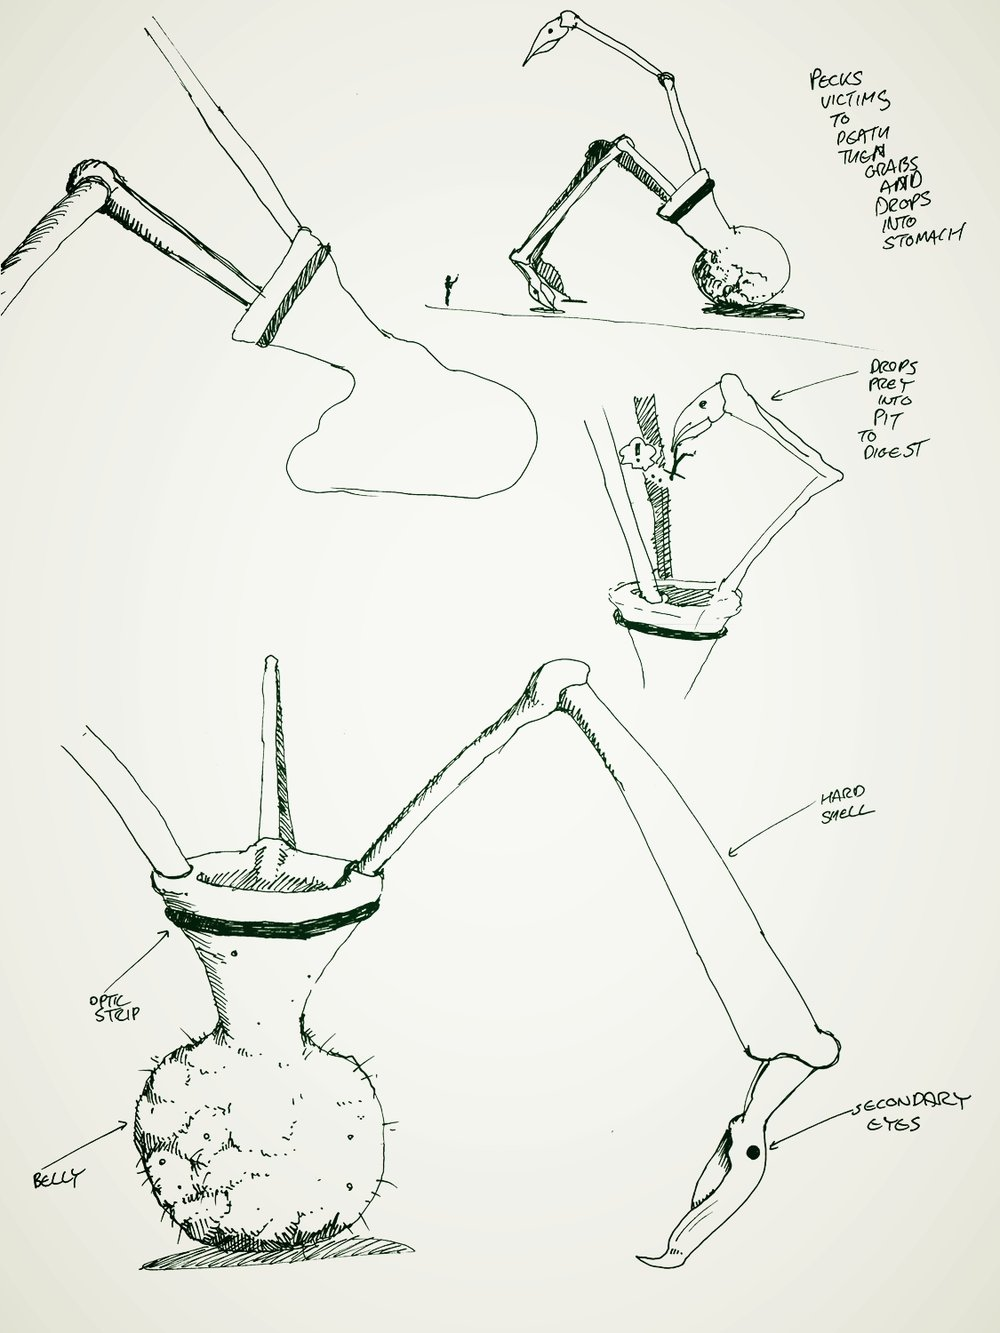 This vase-shaped tripod walks around on three beaks, and throws prey into its acidic open stomach at its centre.